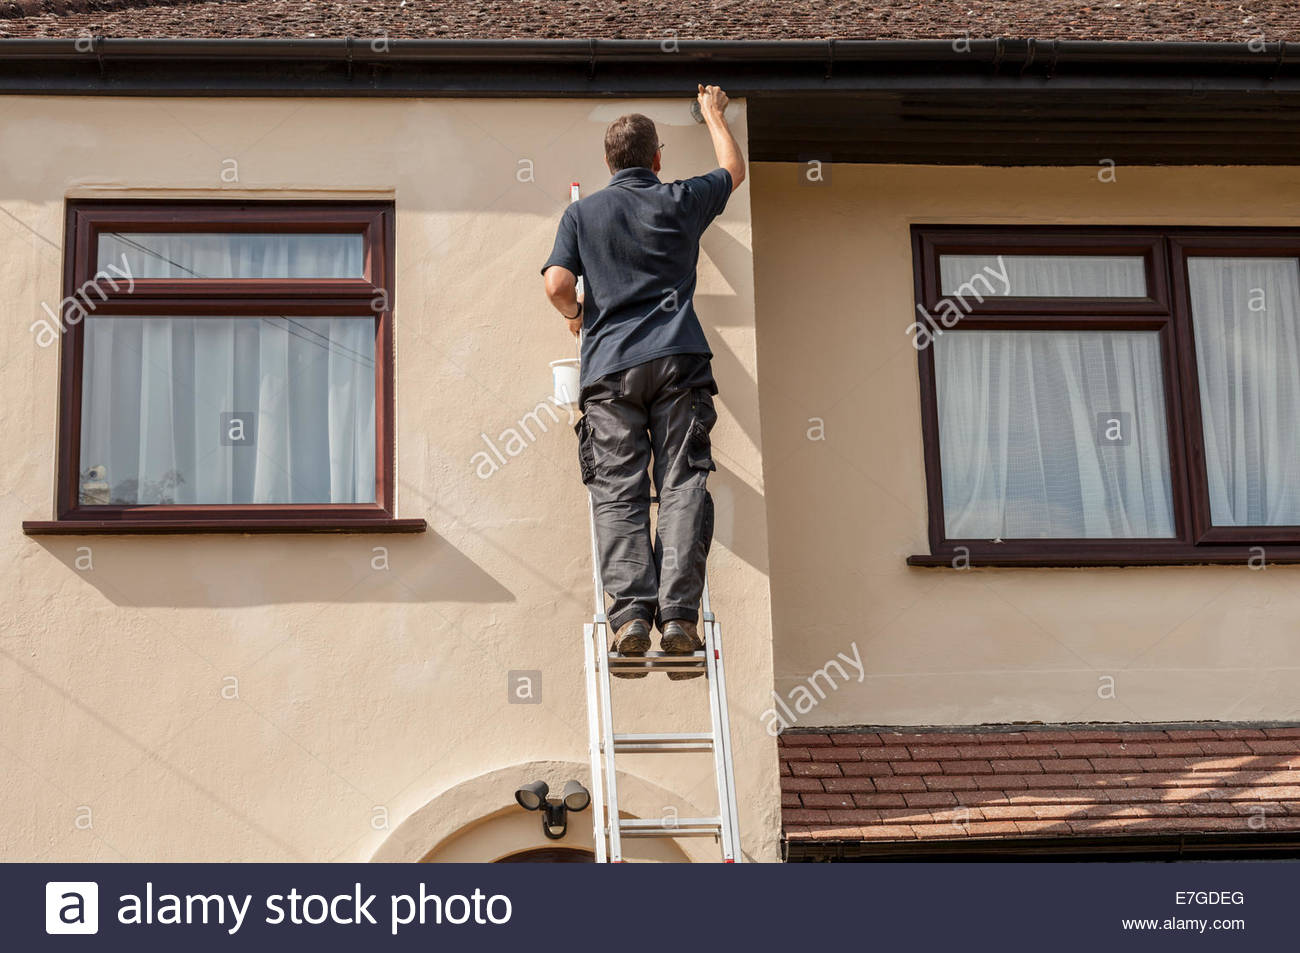 painting house stock photos u0026 painting house stock images alamy